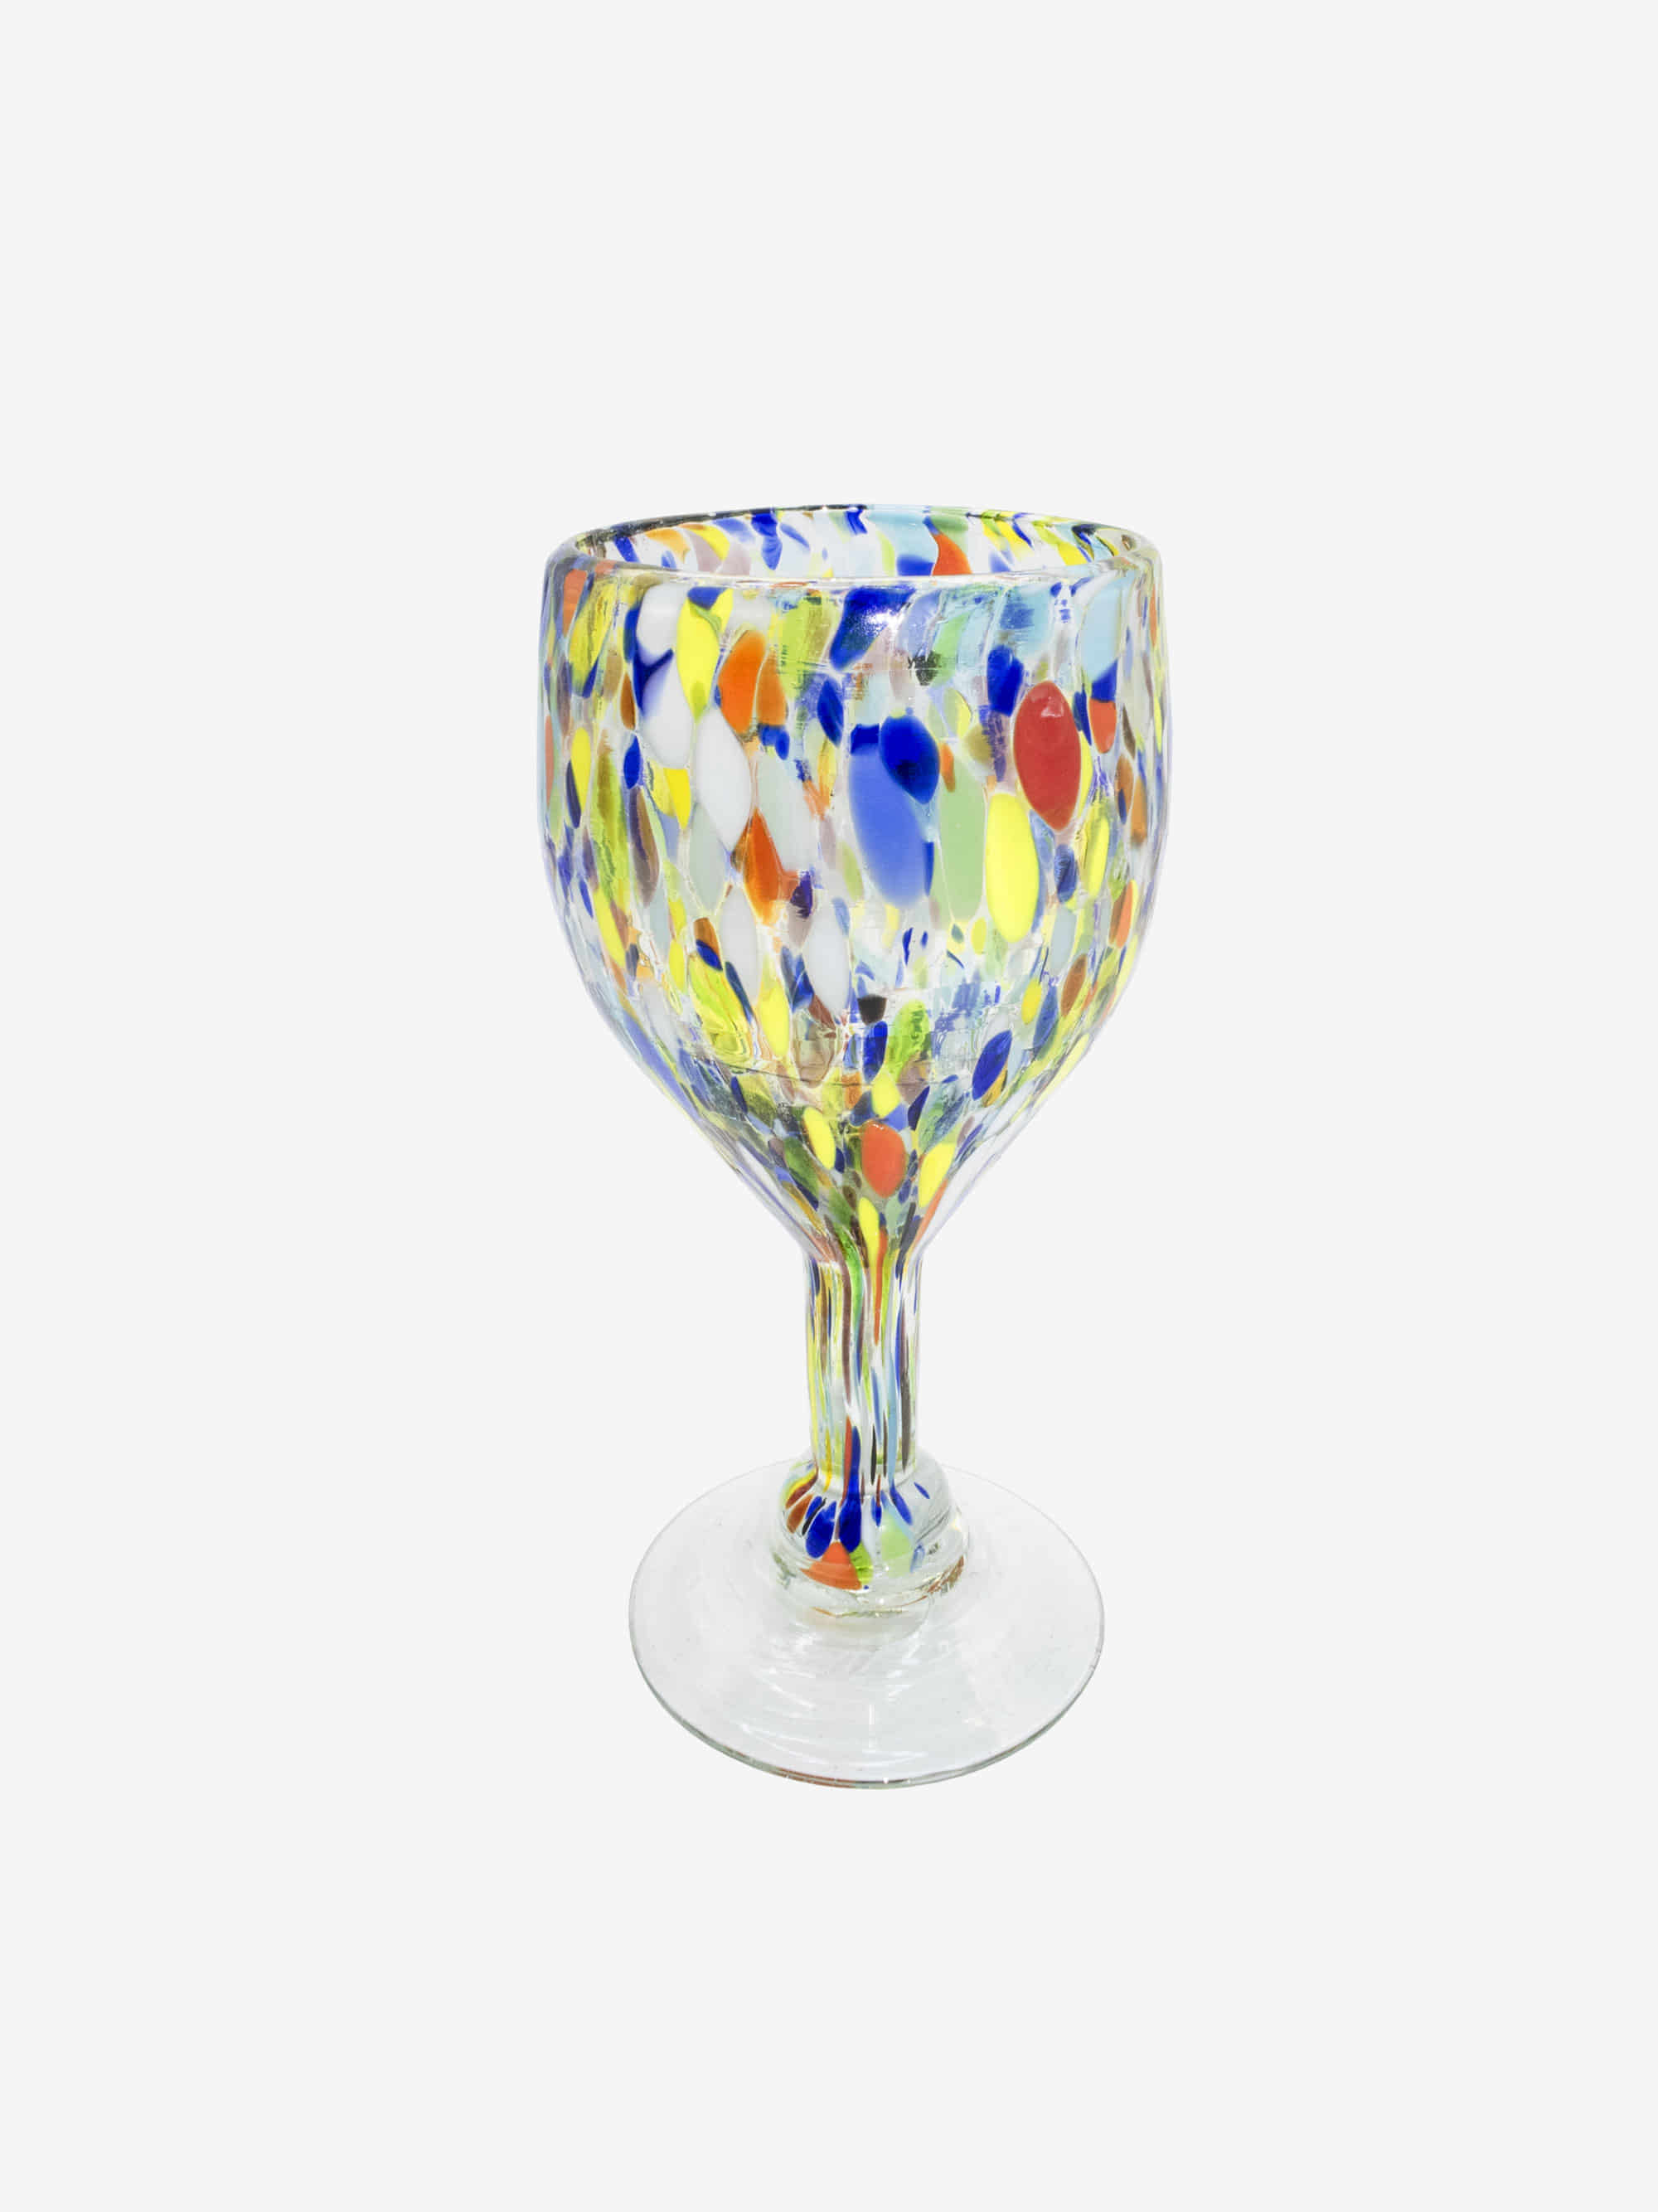 Vintage 1980s  Confetti Art Glass Wine Goblet